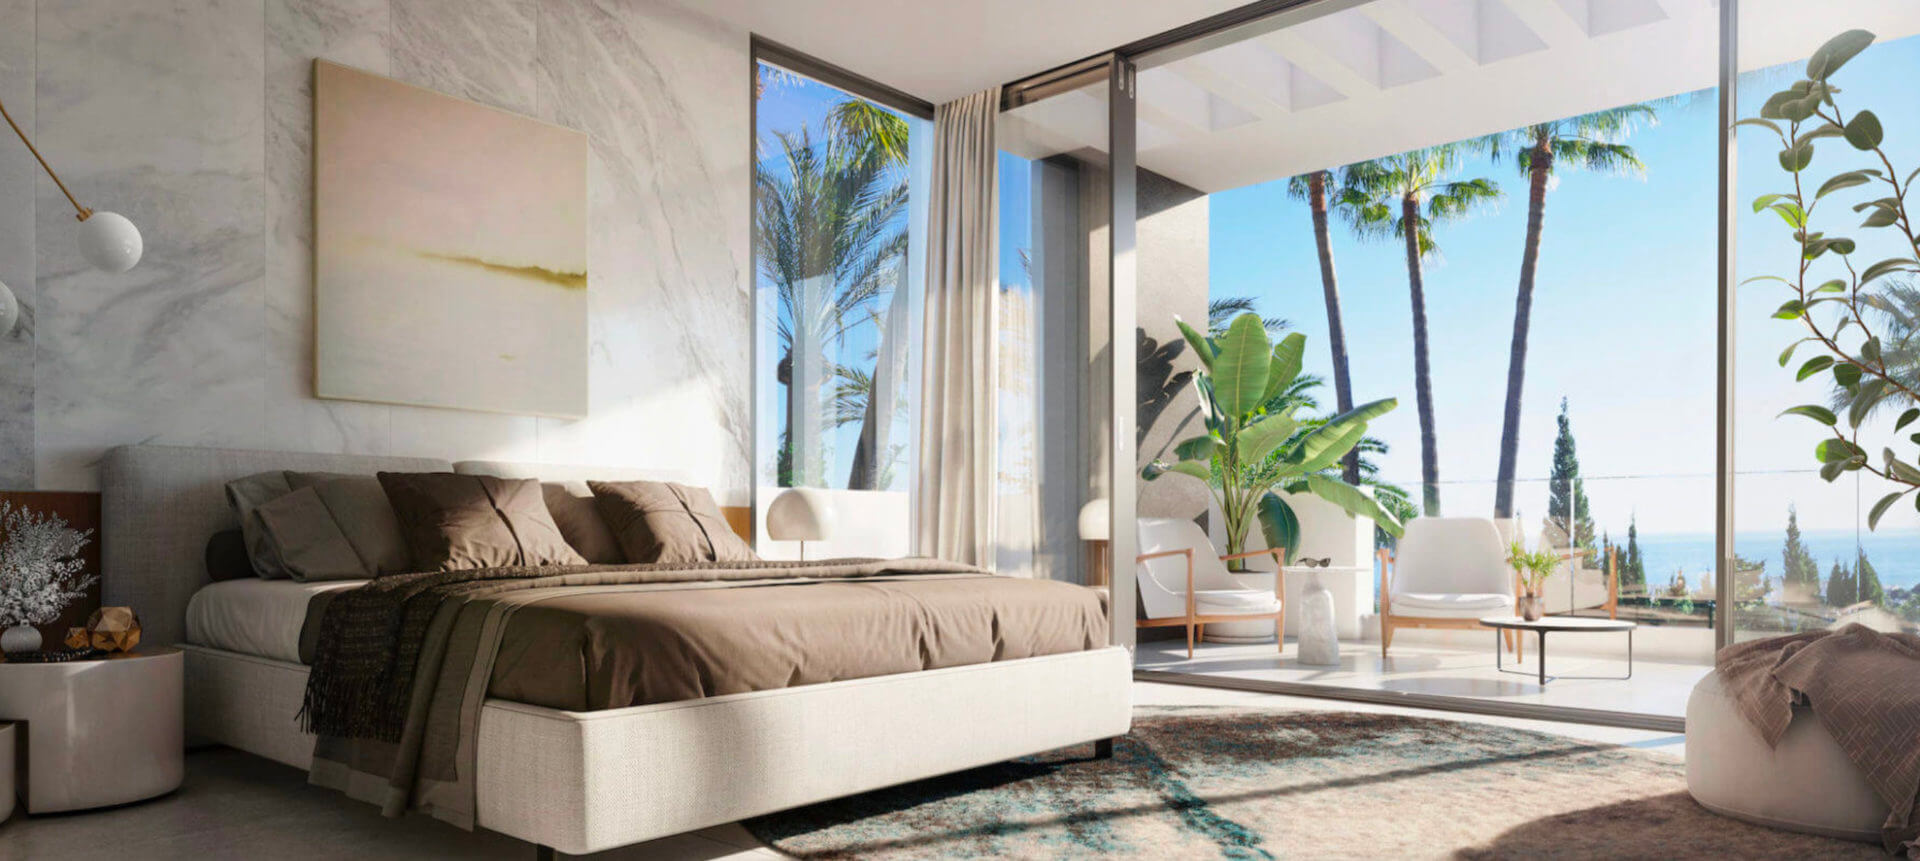 Dream bedrooms in Le Blanc